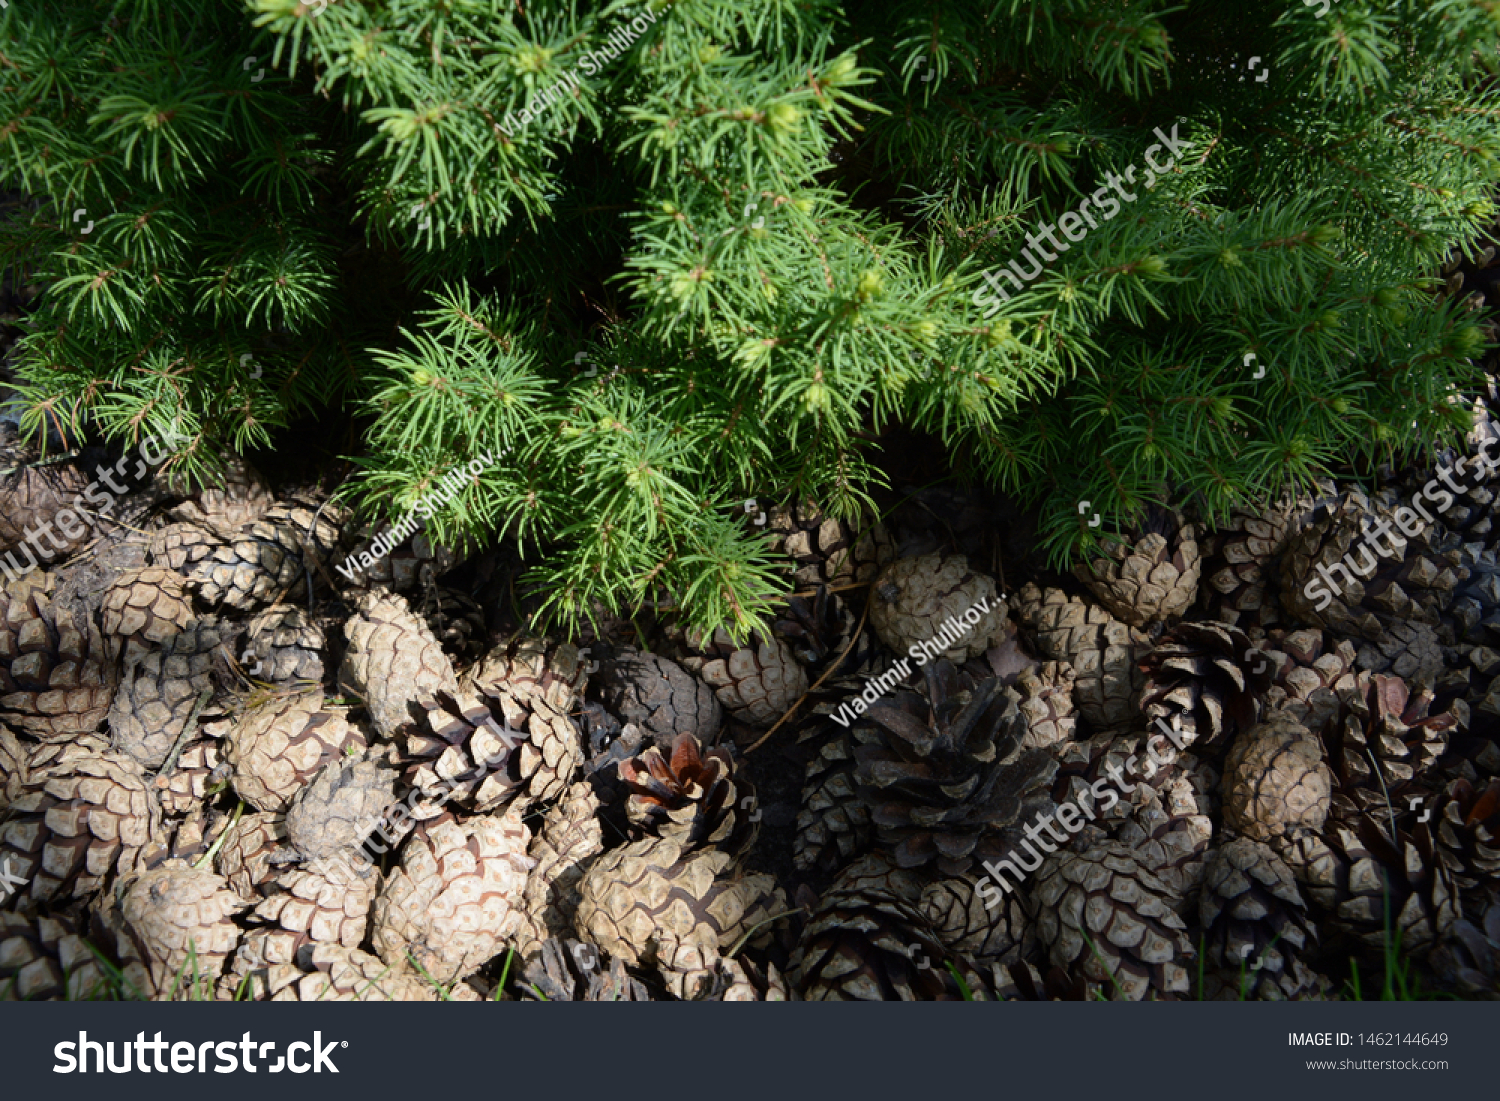 Nature Forest Background Green Moss Cones Nature Stock Image